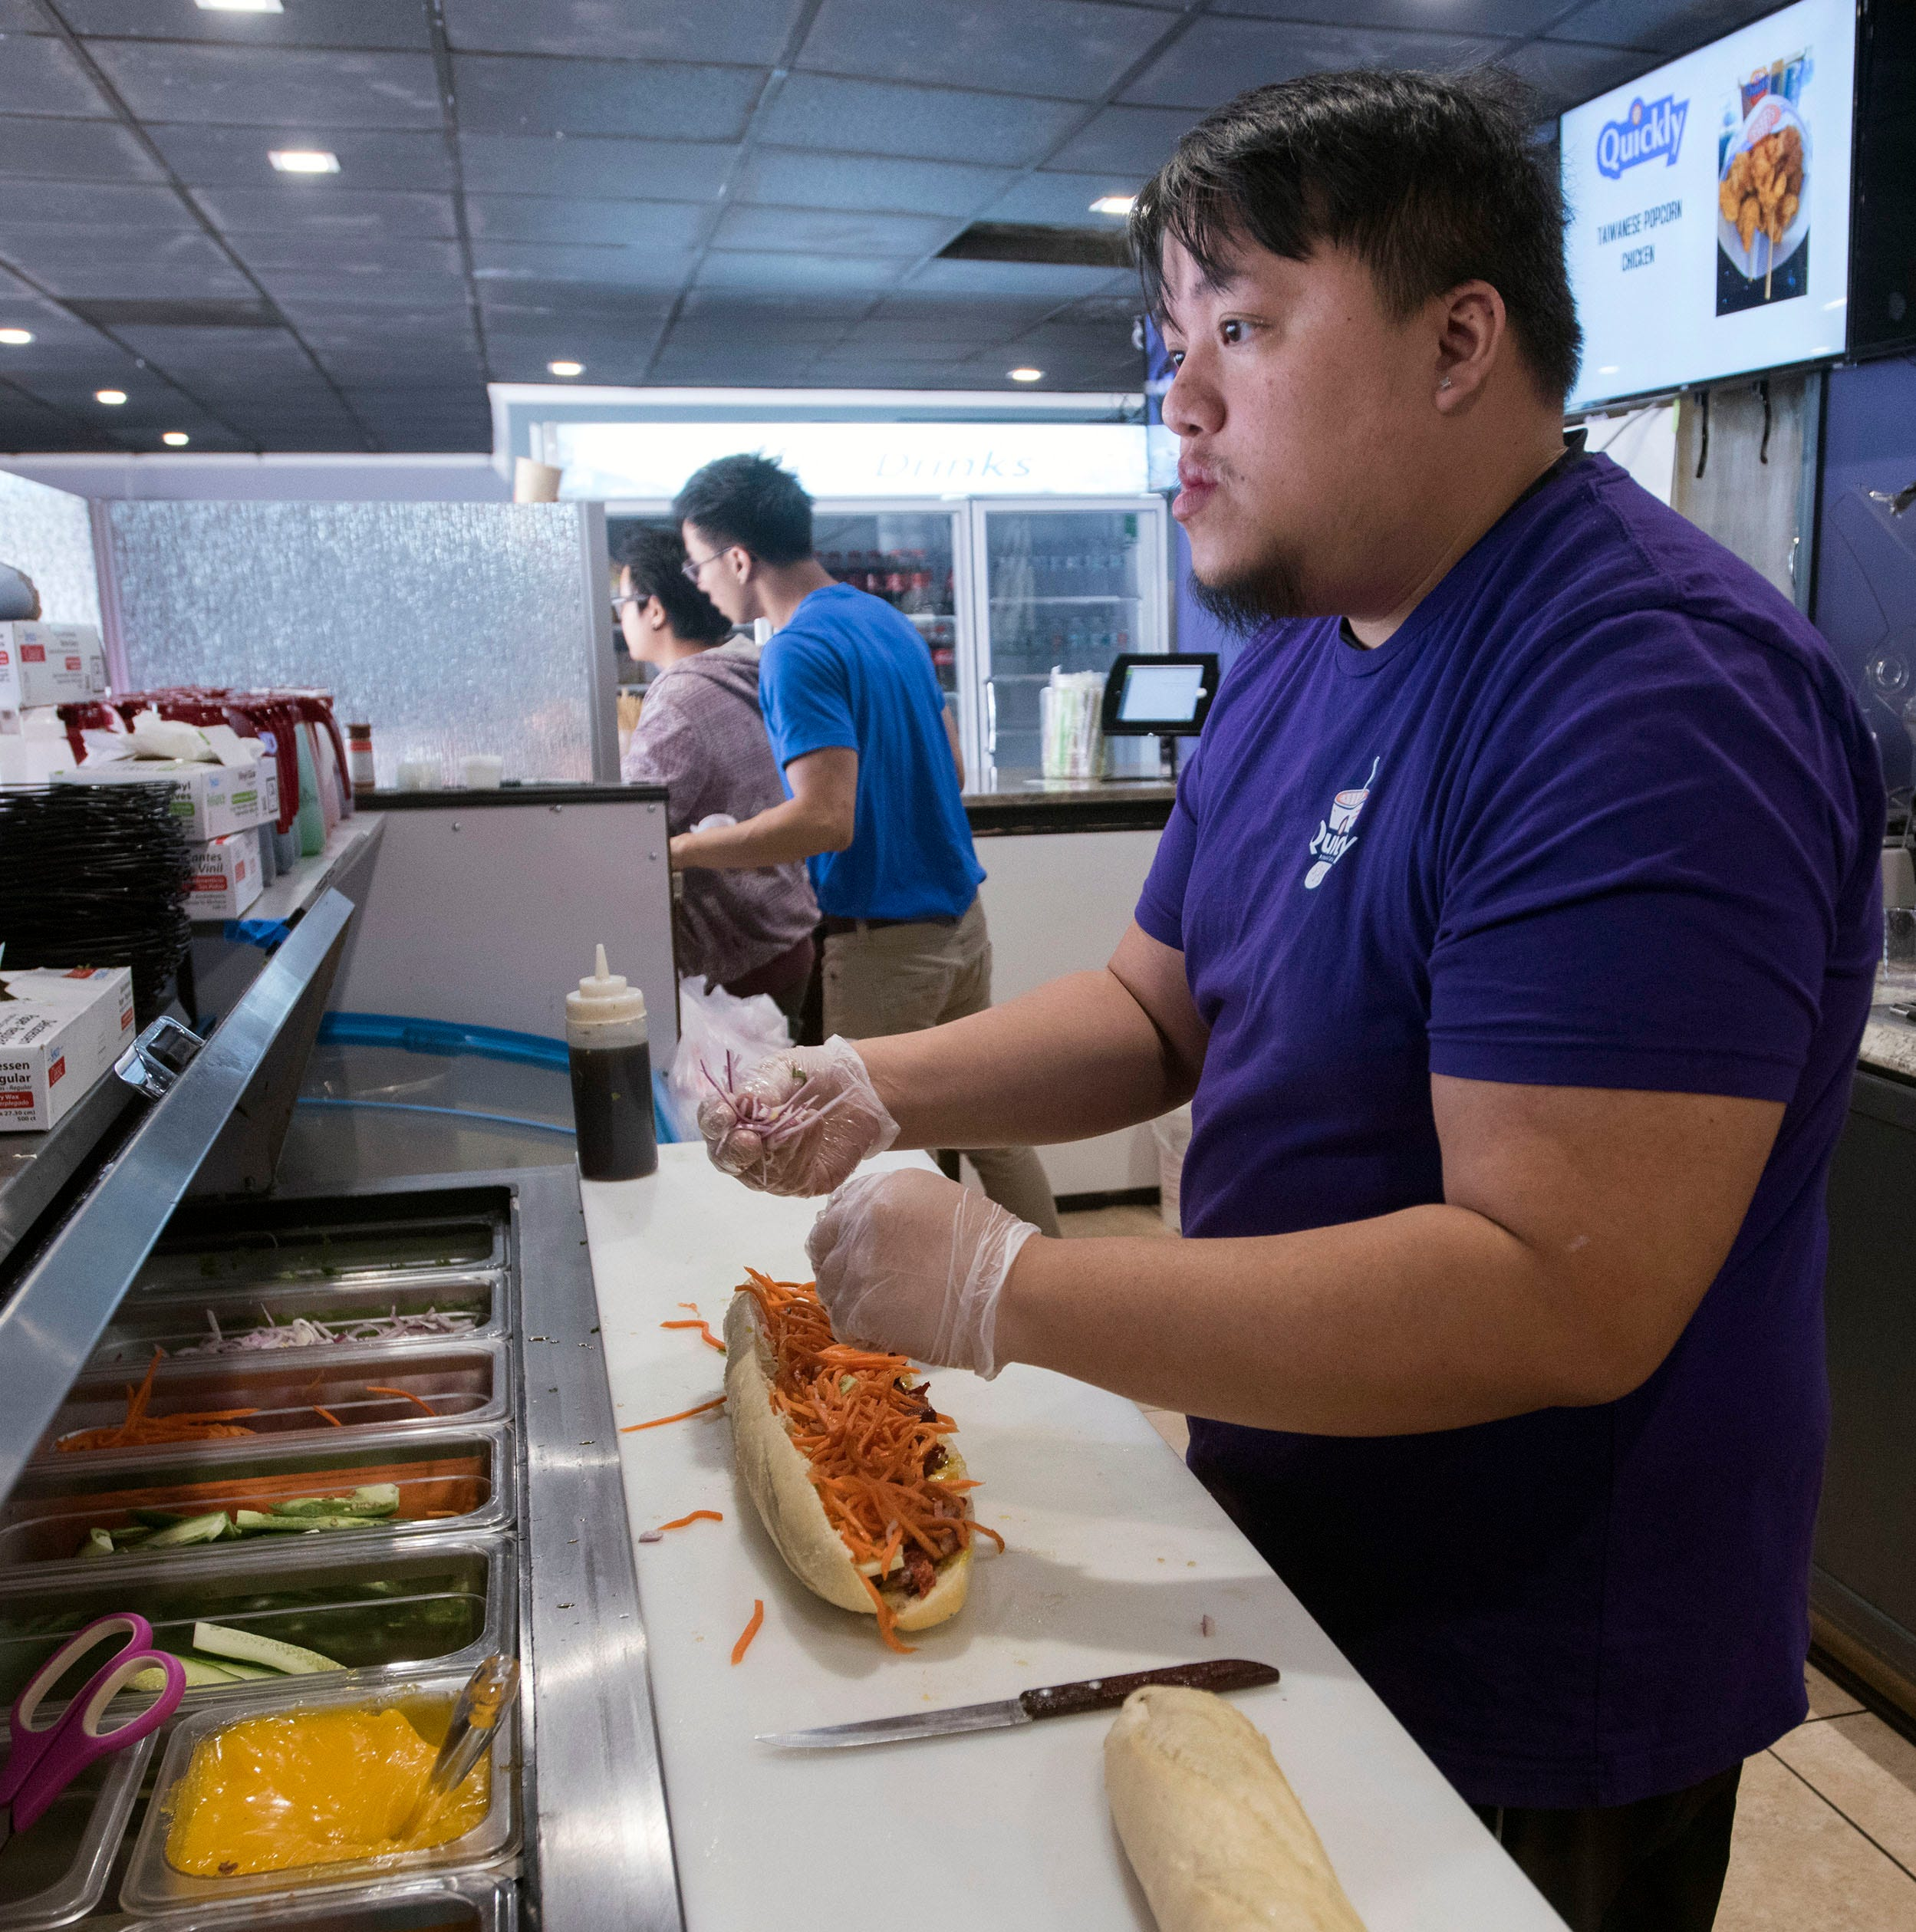 Jimmy Ho prepares a signature Banh mi sandwich at the new Quickly restaurant in Brownsville on Monday, March 18, 2019.